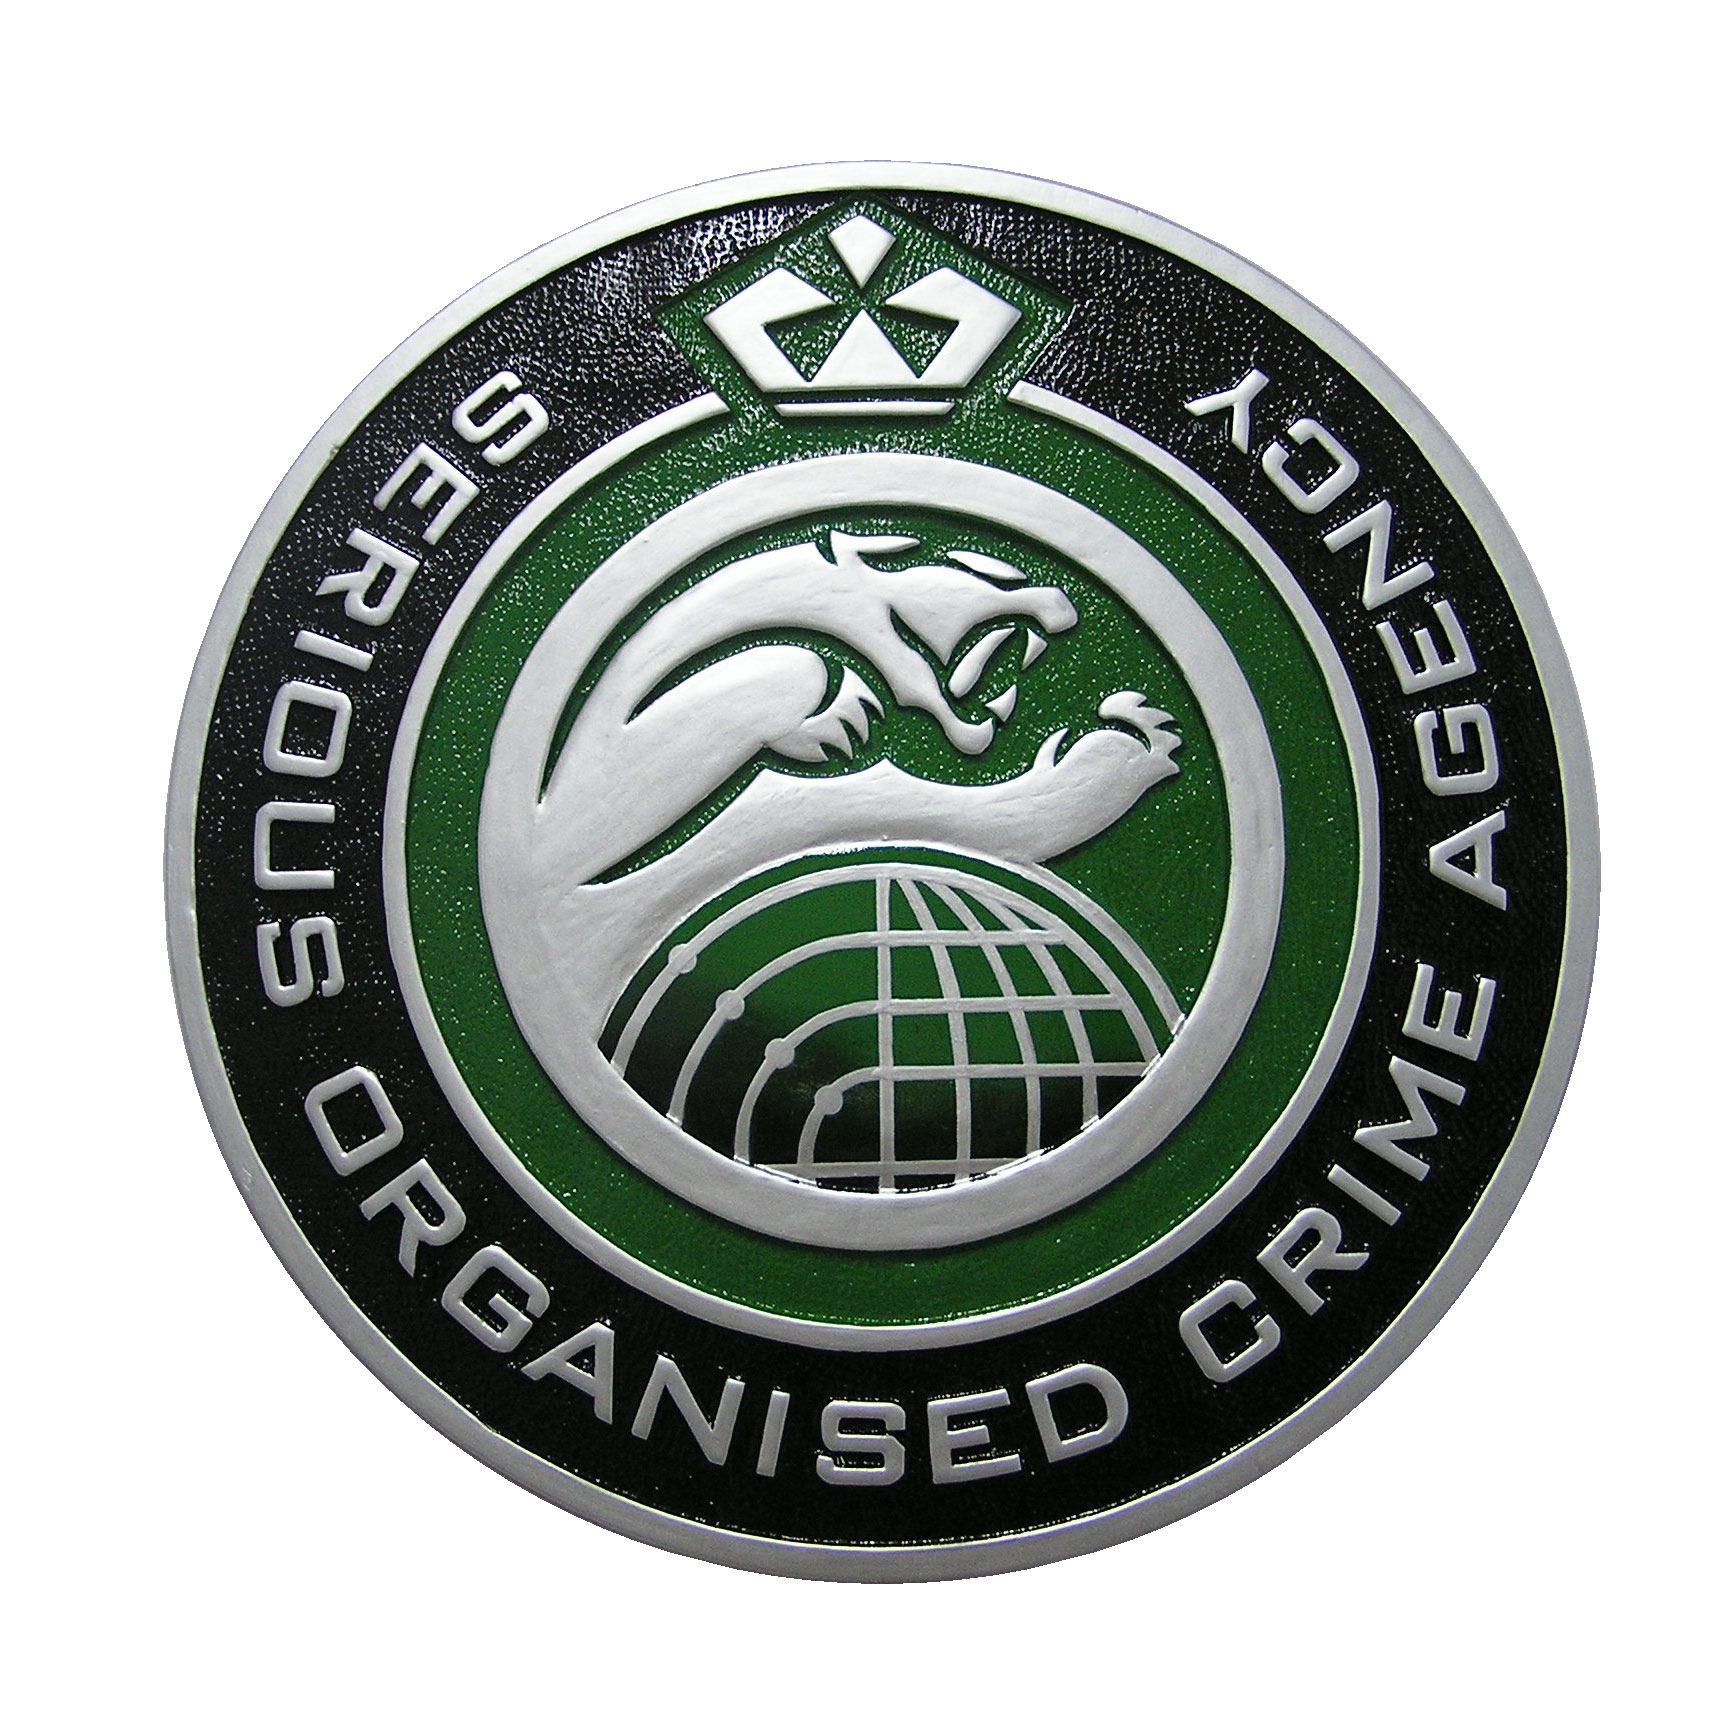 Serious Organized Crime Agency Seal